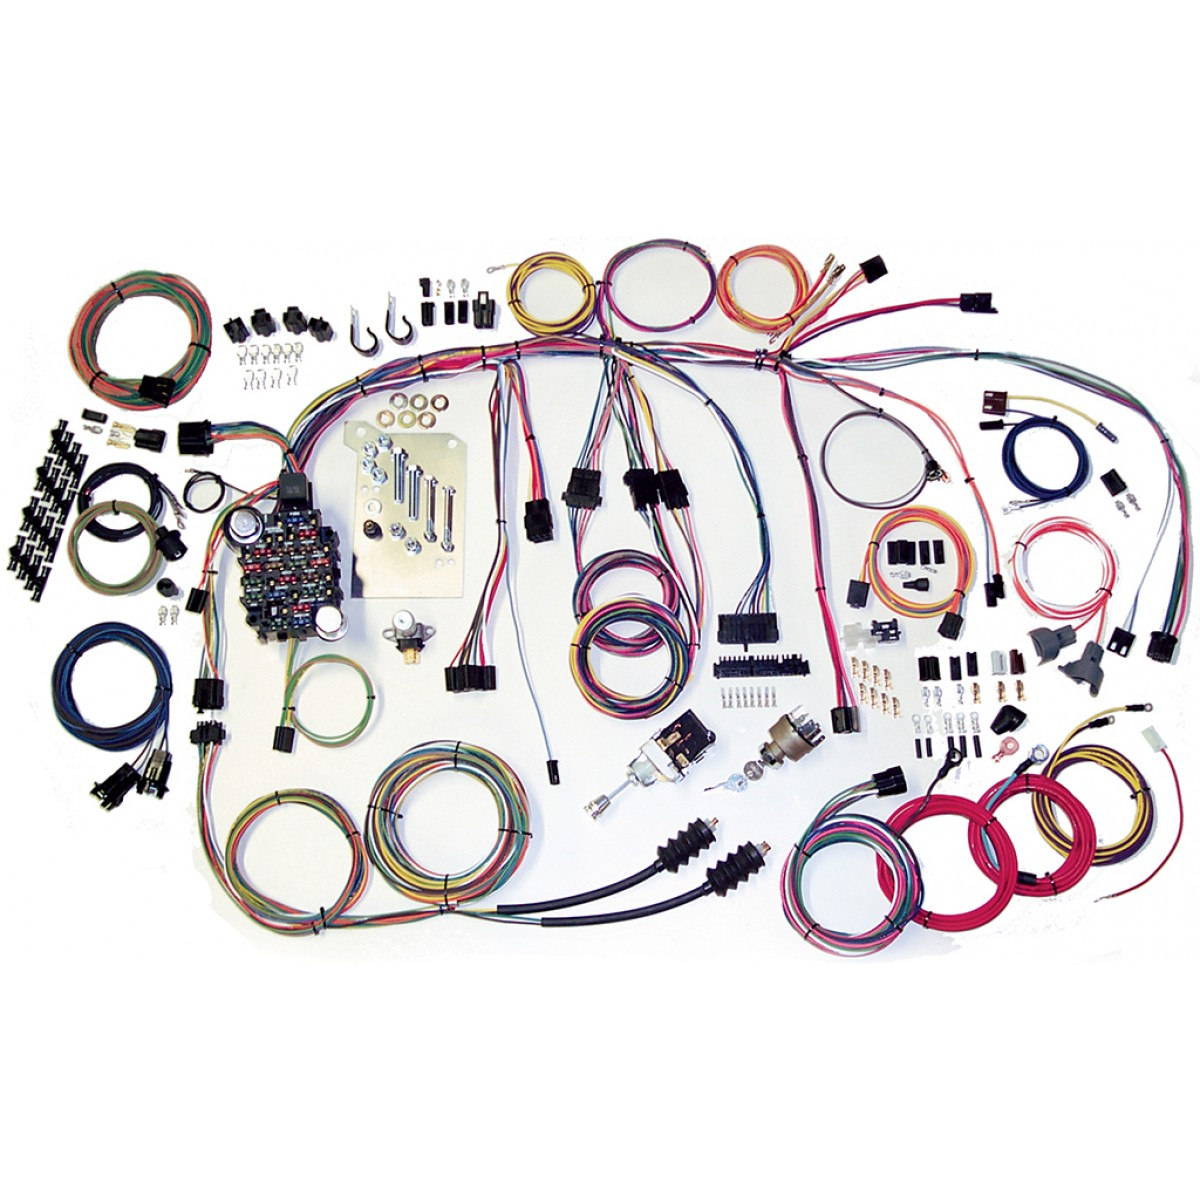 complete wiring harness kit 1960 1966 chevy truck part 500560 rh code510 com wiring harness 1950 chevy truck wiring harness 1971 chevy truck